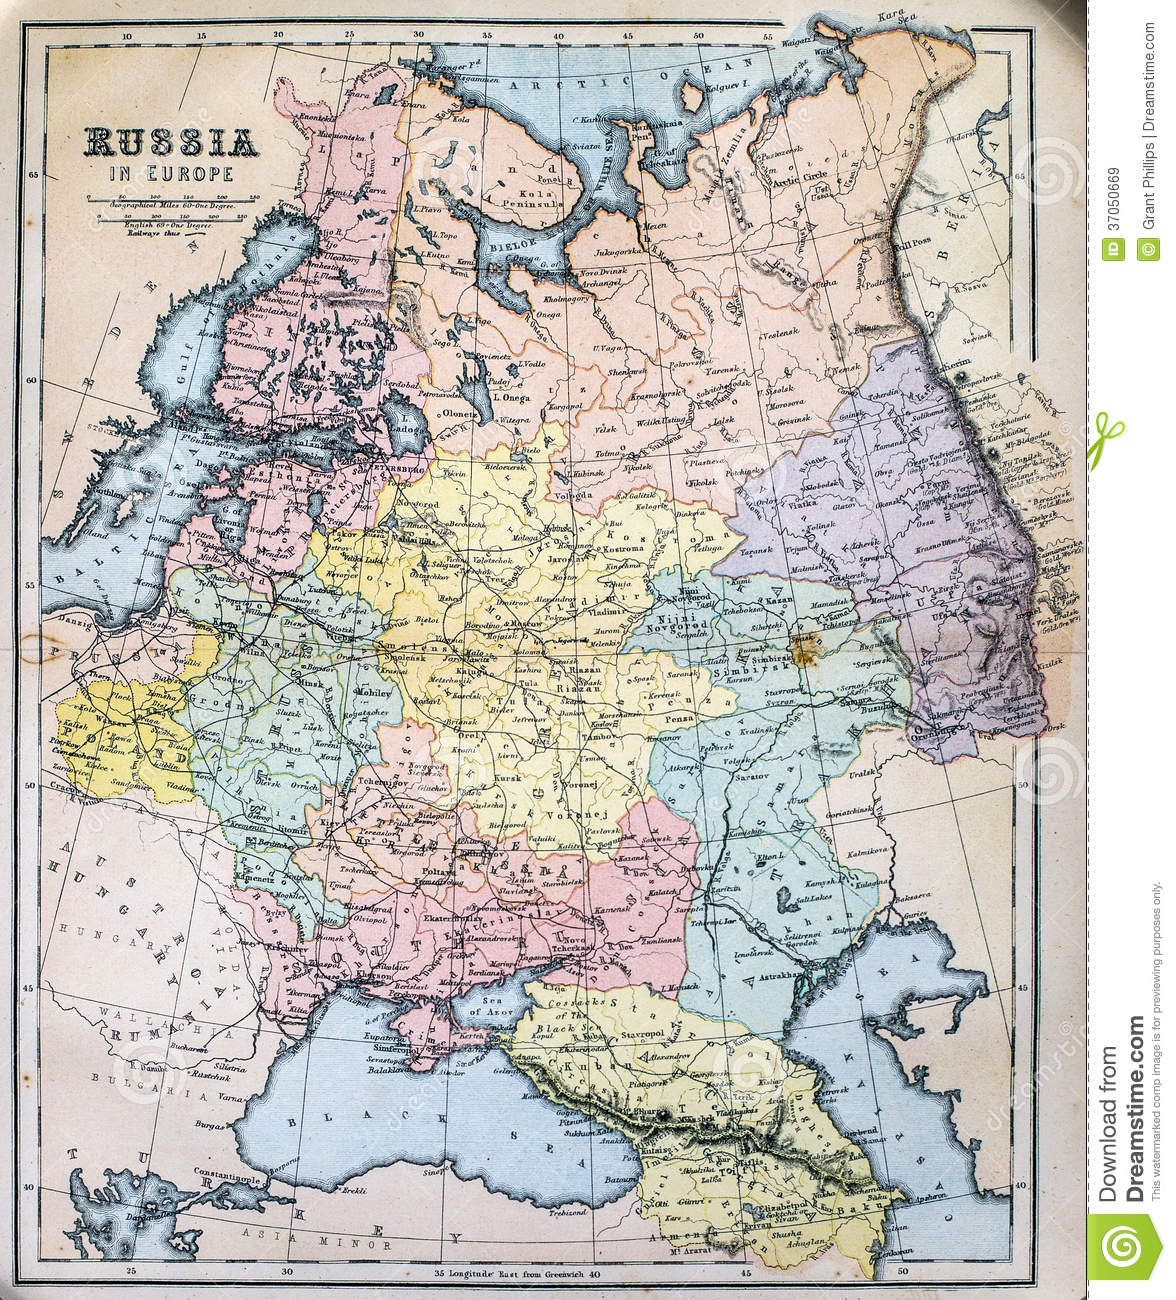 Antique Map Of Russia In Europe Stock Image